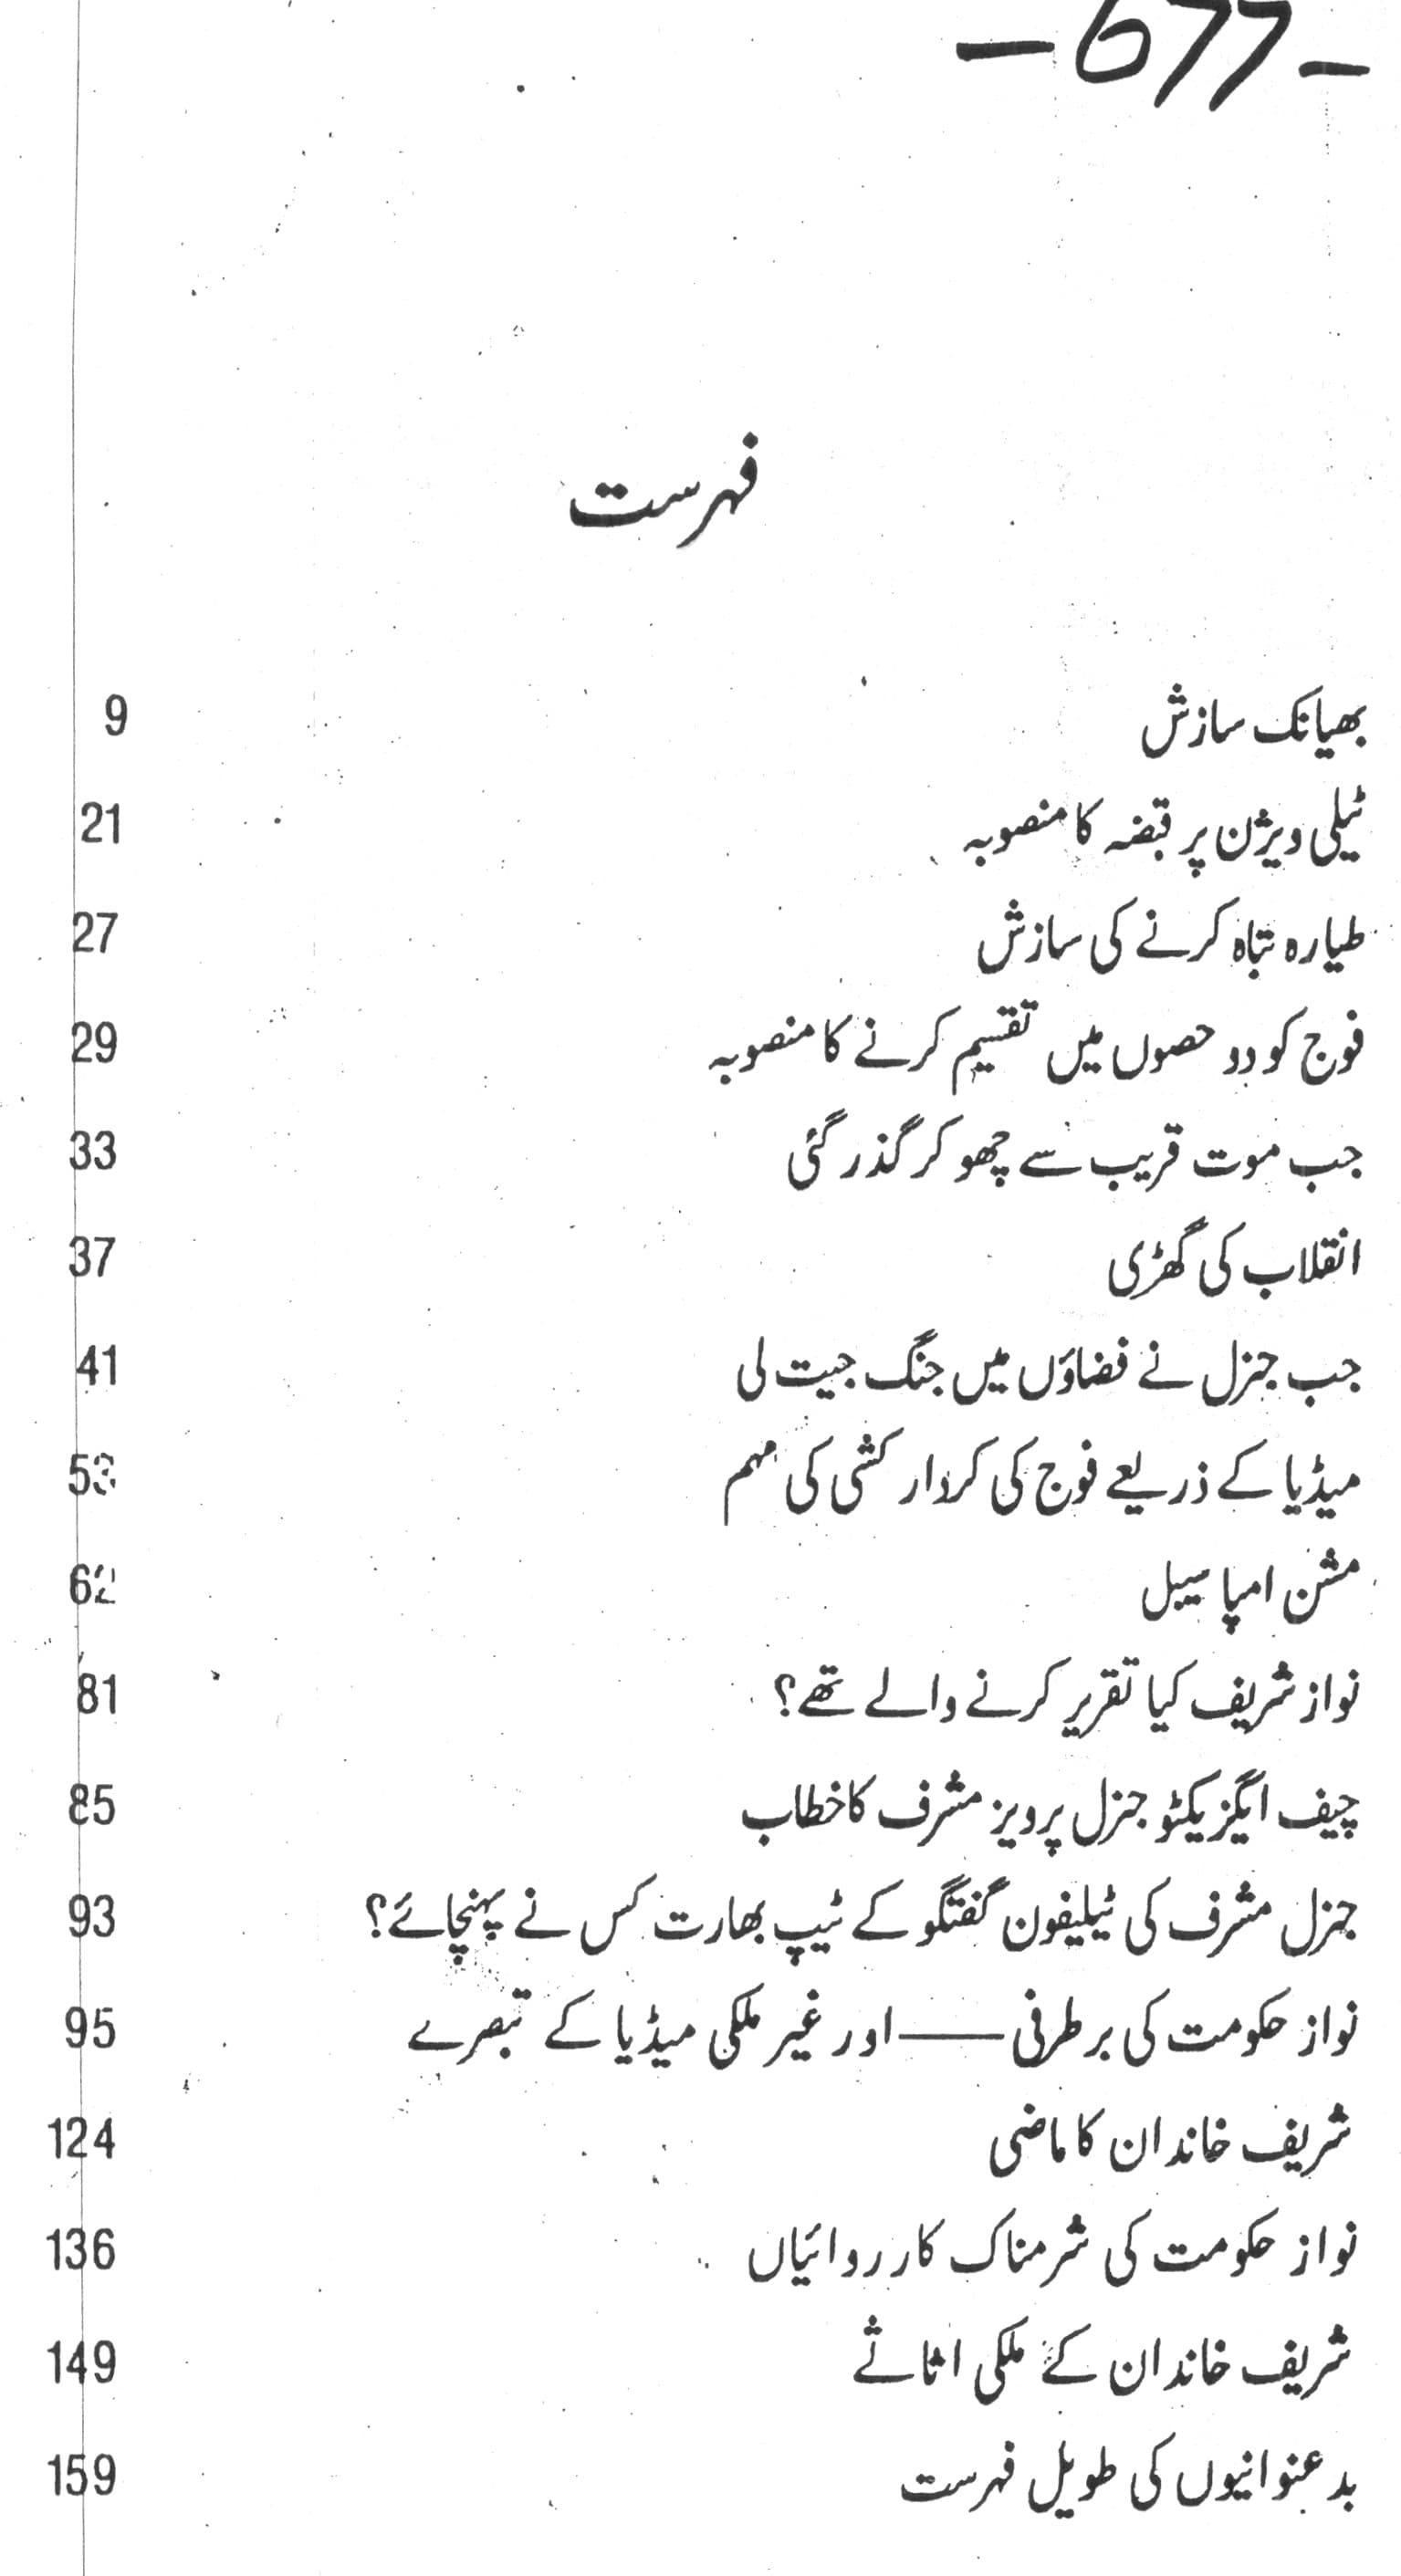 A table of contents for 'Raiwind Sazish' includes essential reading such as a chapter titled 'Mission Impossible'.